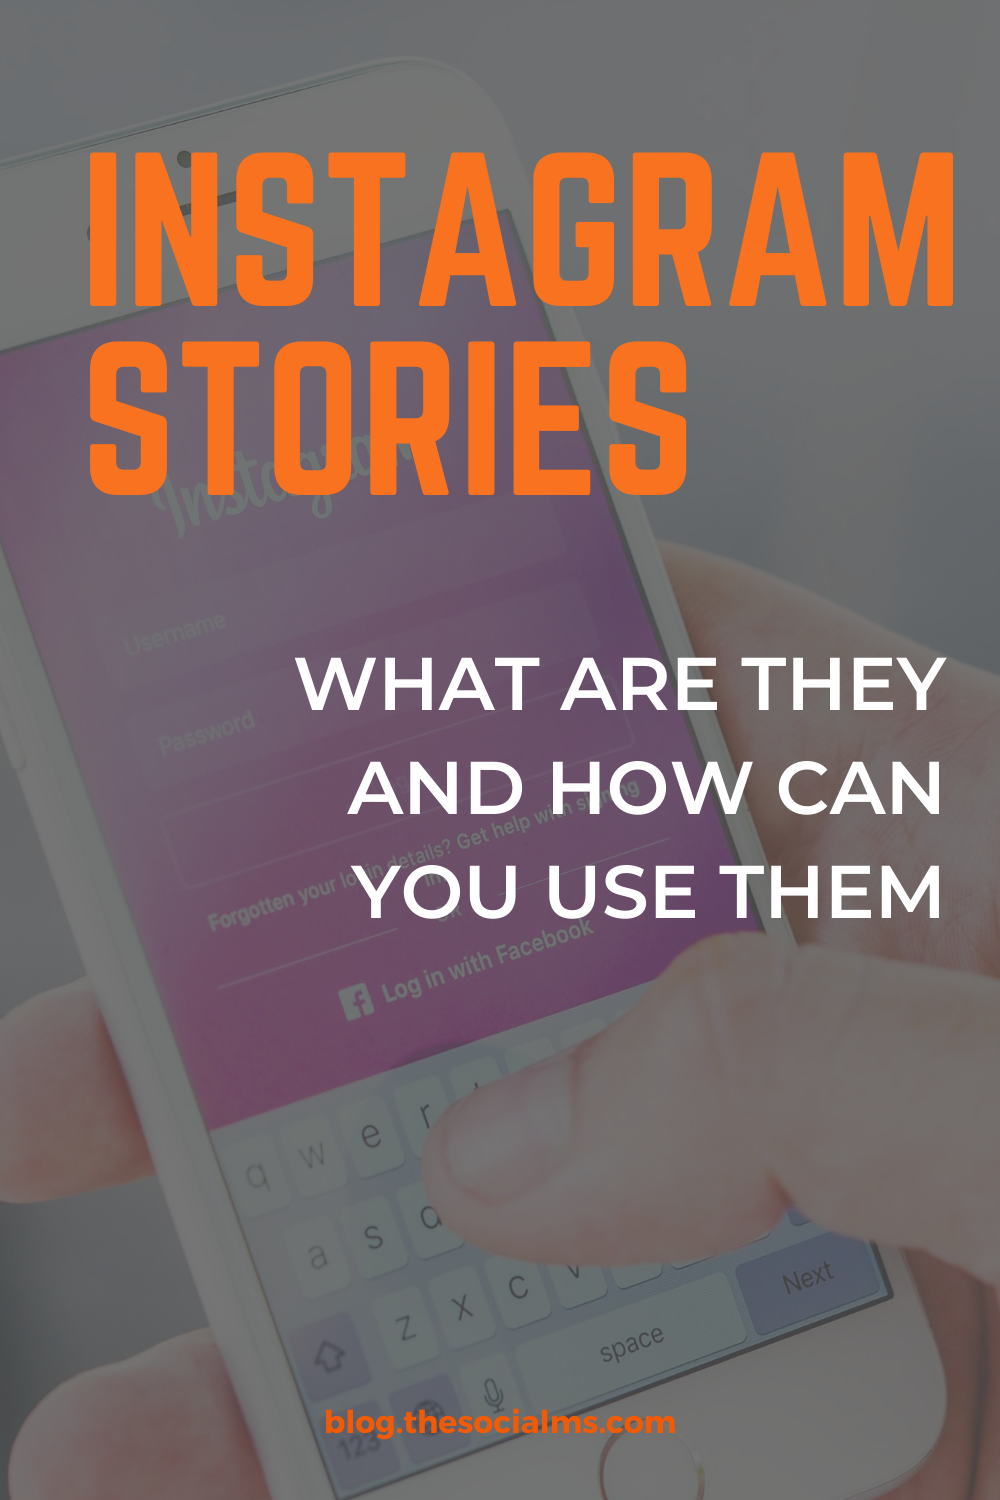 Instagram provides you with a huge variety of tools to make your stories interactive and engage with your audience through your stories. With the right strategy, you can use this story engagement to earn more followers and reach for your Instagram feed posts, too. Here is how you can use Instagram stories to increase engagement and grow your audience on Instagram. #instagram #instagramstories #instagramhacks #instagramtips #instagramfollowers #instagramengagement #instagramstrategy